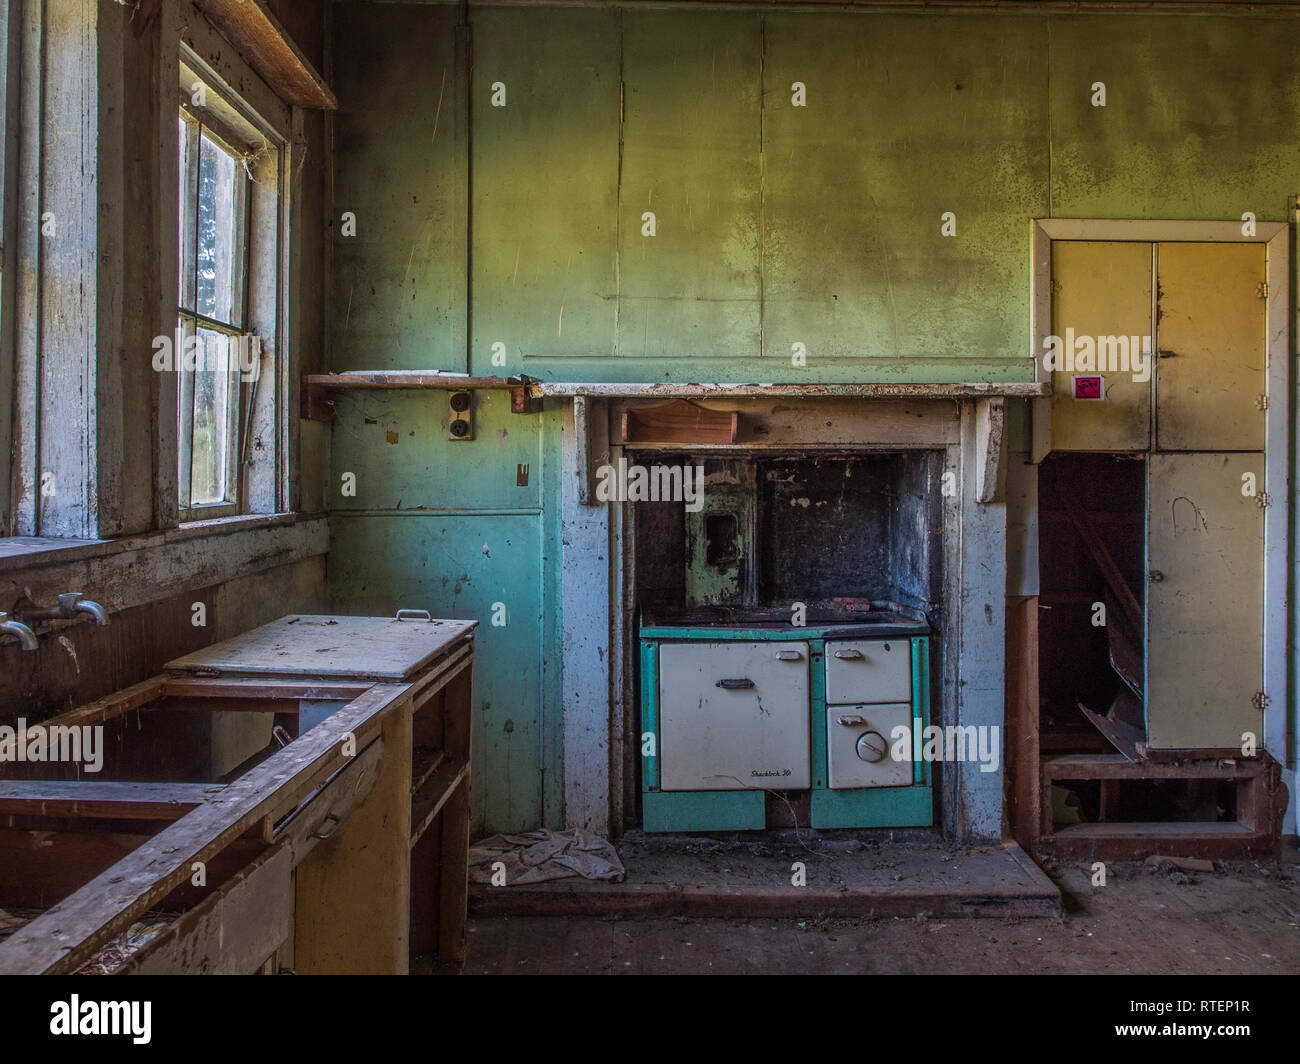 Kitchen with wood stove, abandoned house, Endeans Mill, Waimiha, Ongarue, King Country, New Zealand - Stock Image